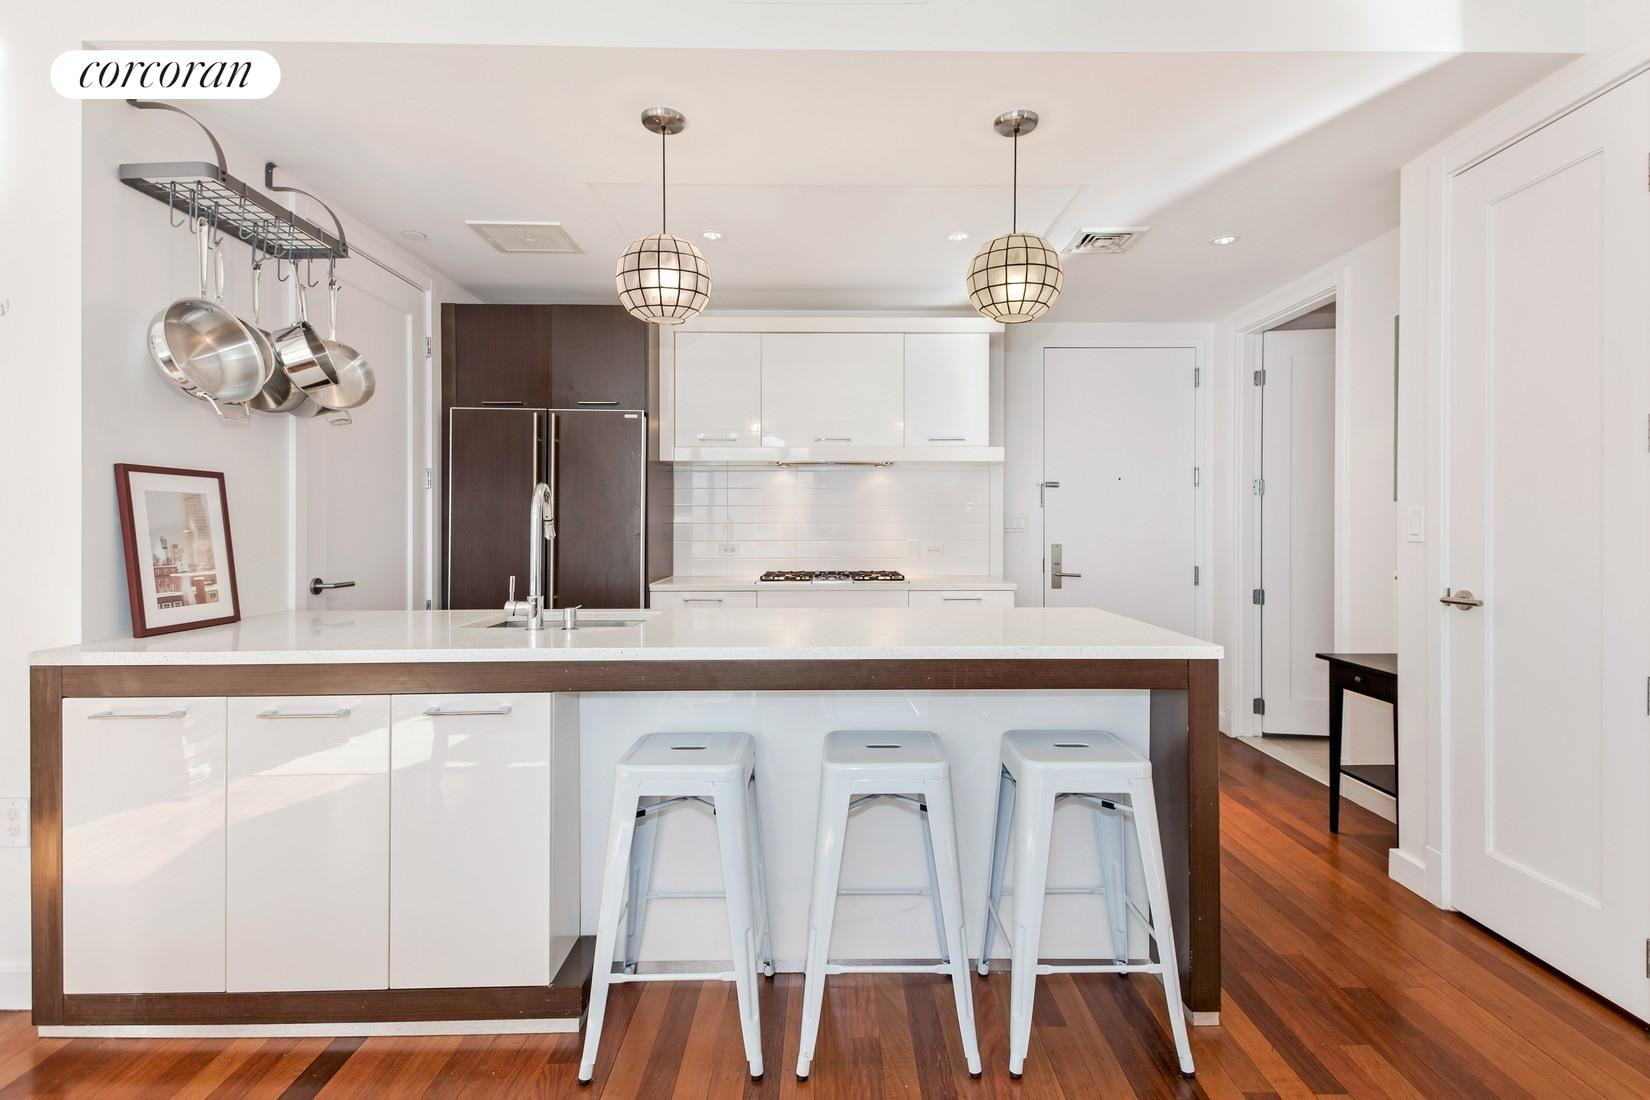 125 North 10th Street, North5F, large breakfast bar and stainless steel appliances